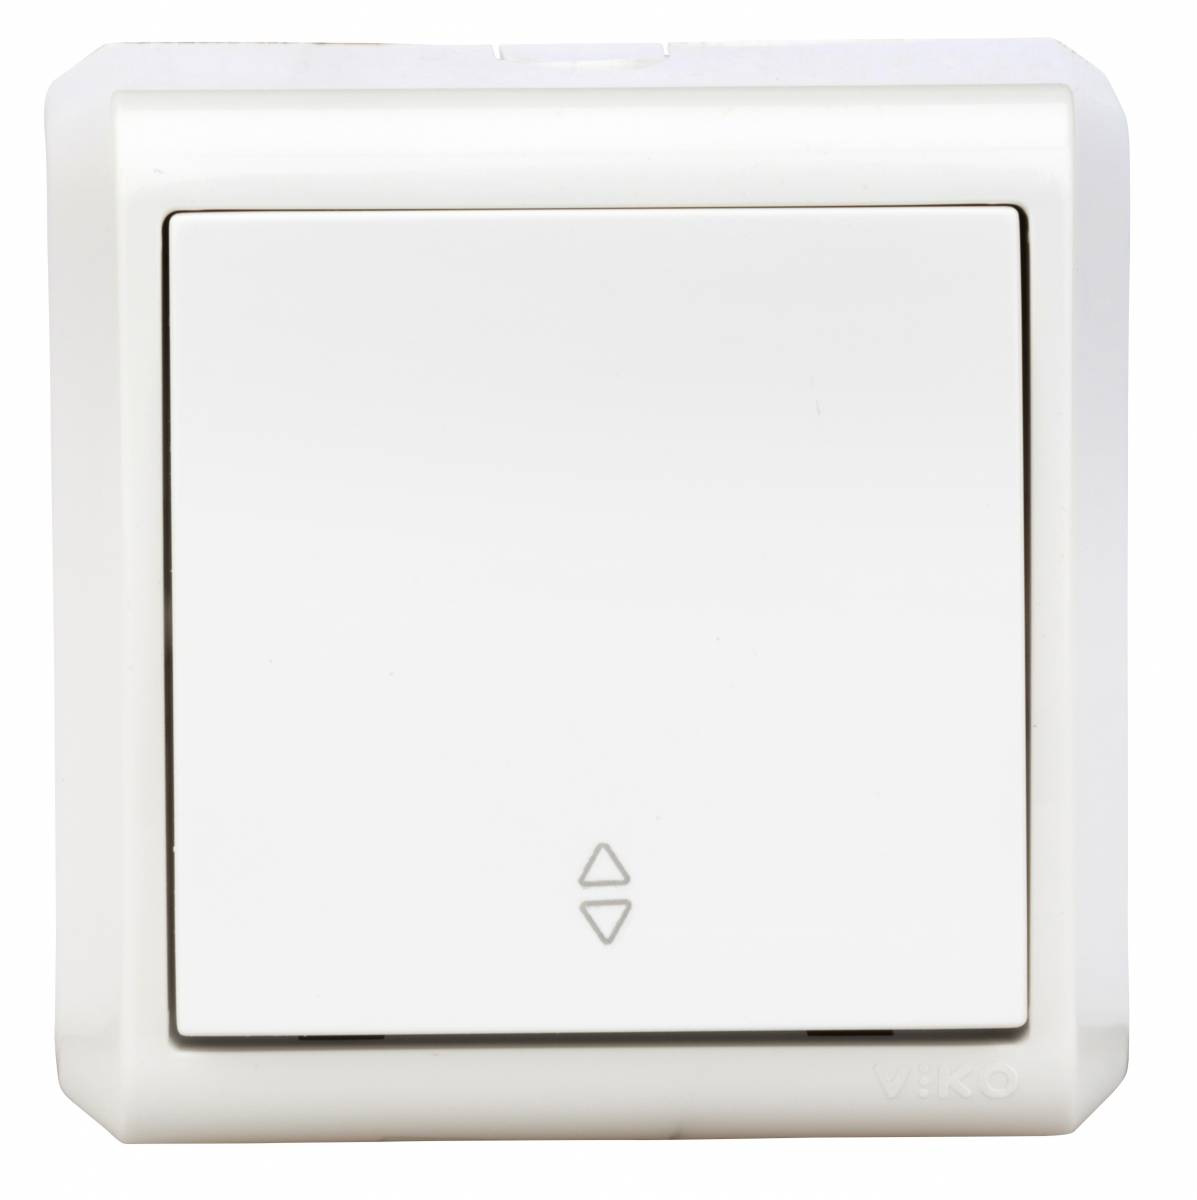 Wall m. changeover switch, screw connection, IP20, white